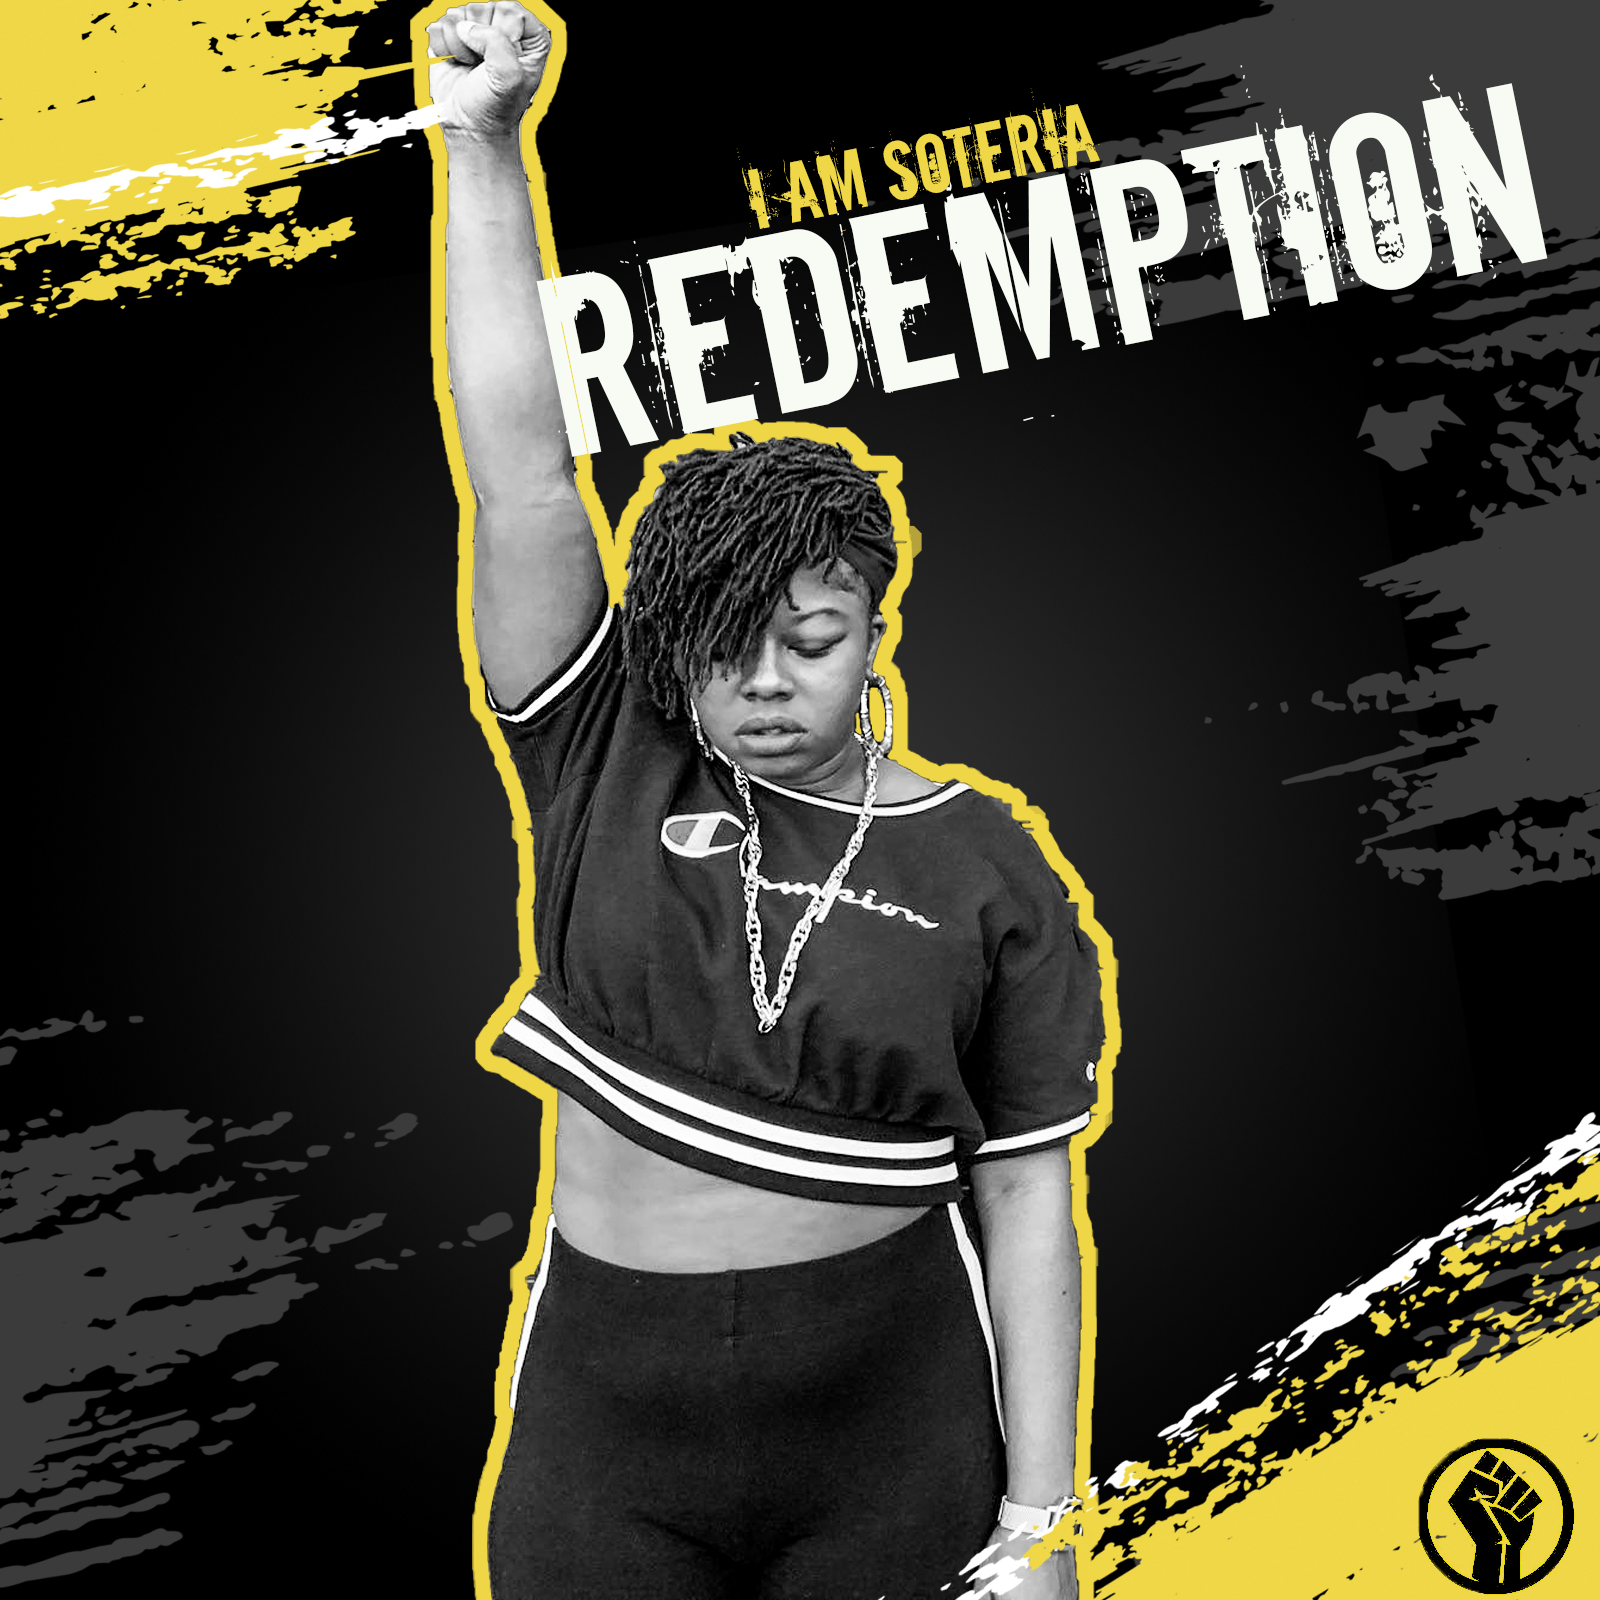 I Am Soteria - Redemption(Guitaa Music Review)